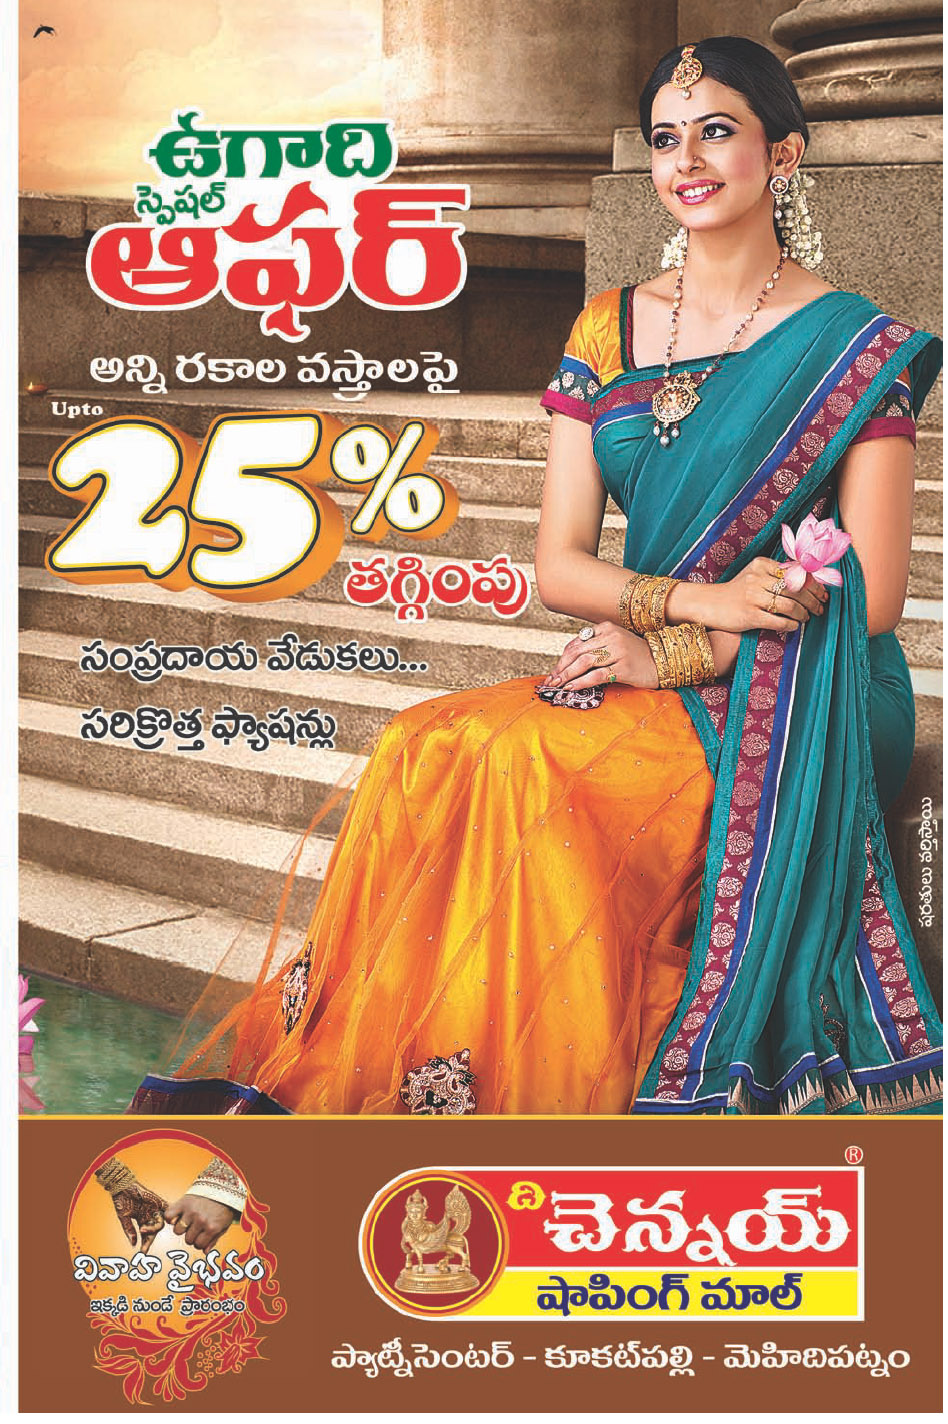 The Chennai Shoppong Mall Presenting Ugadi Special Offer